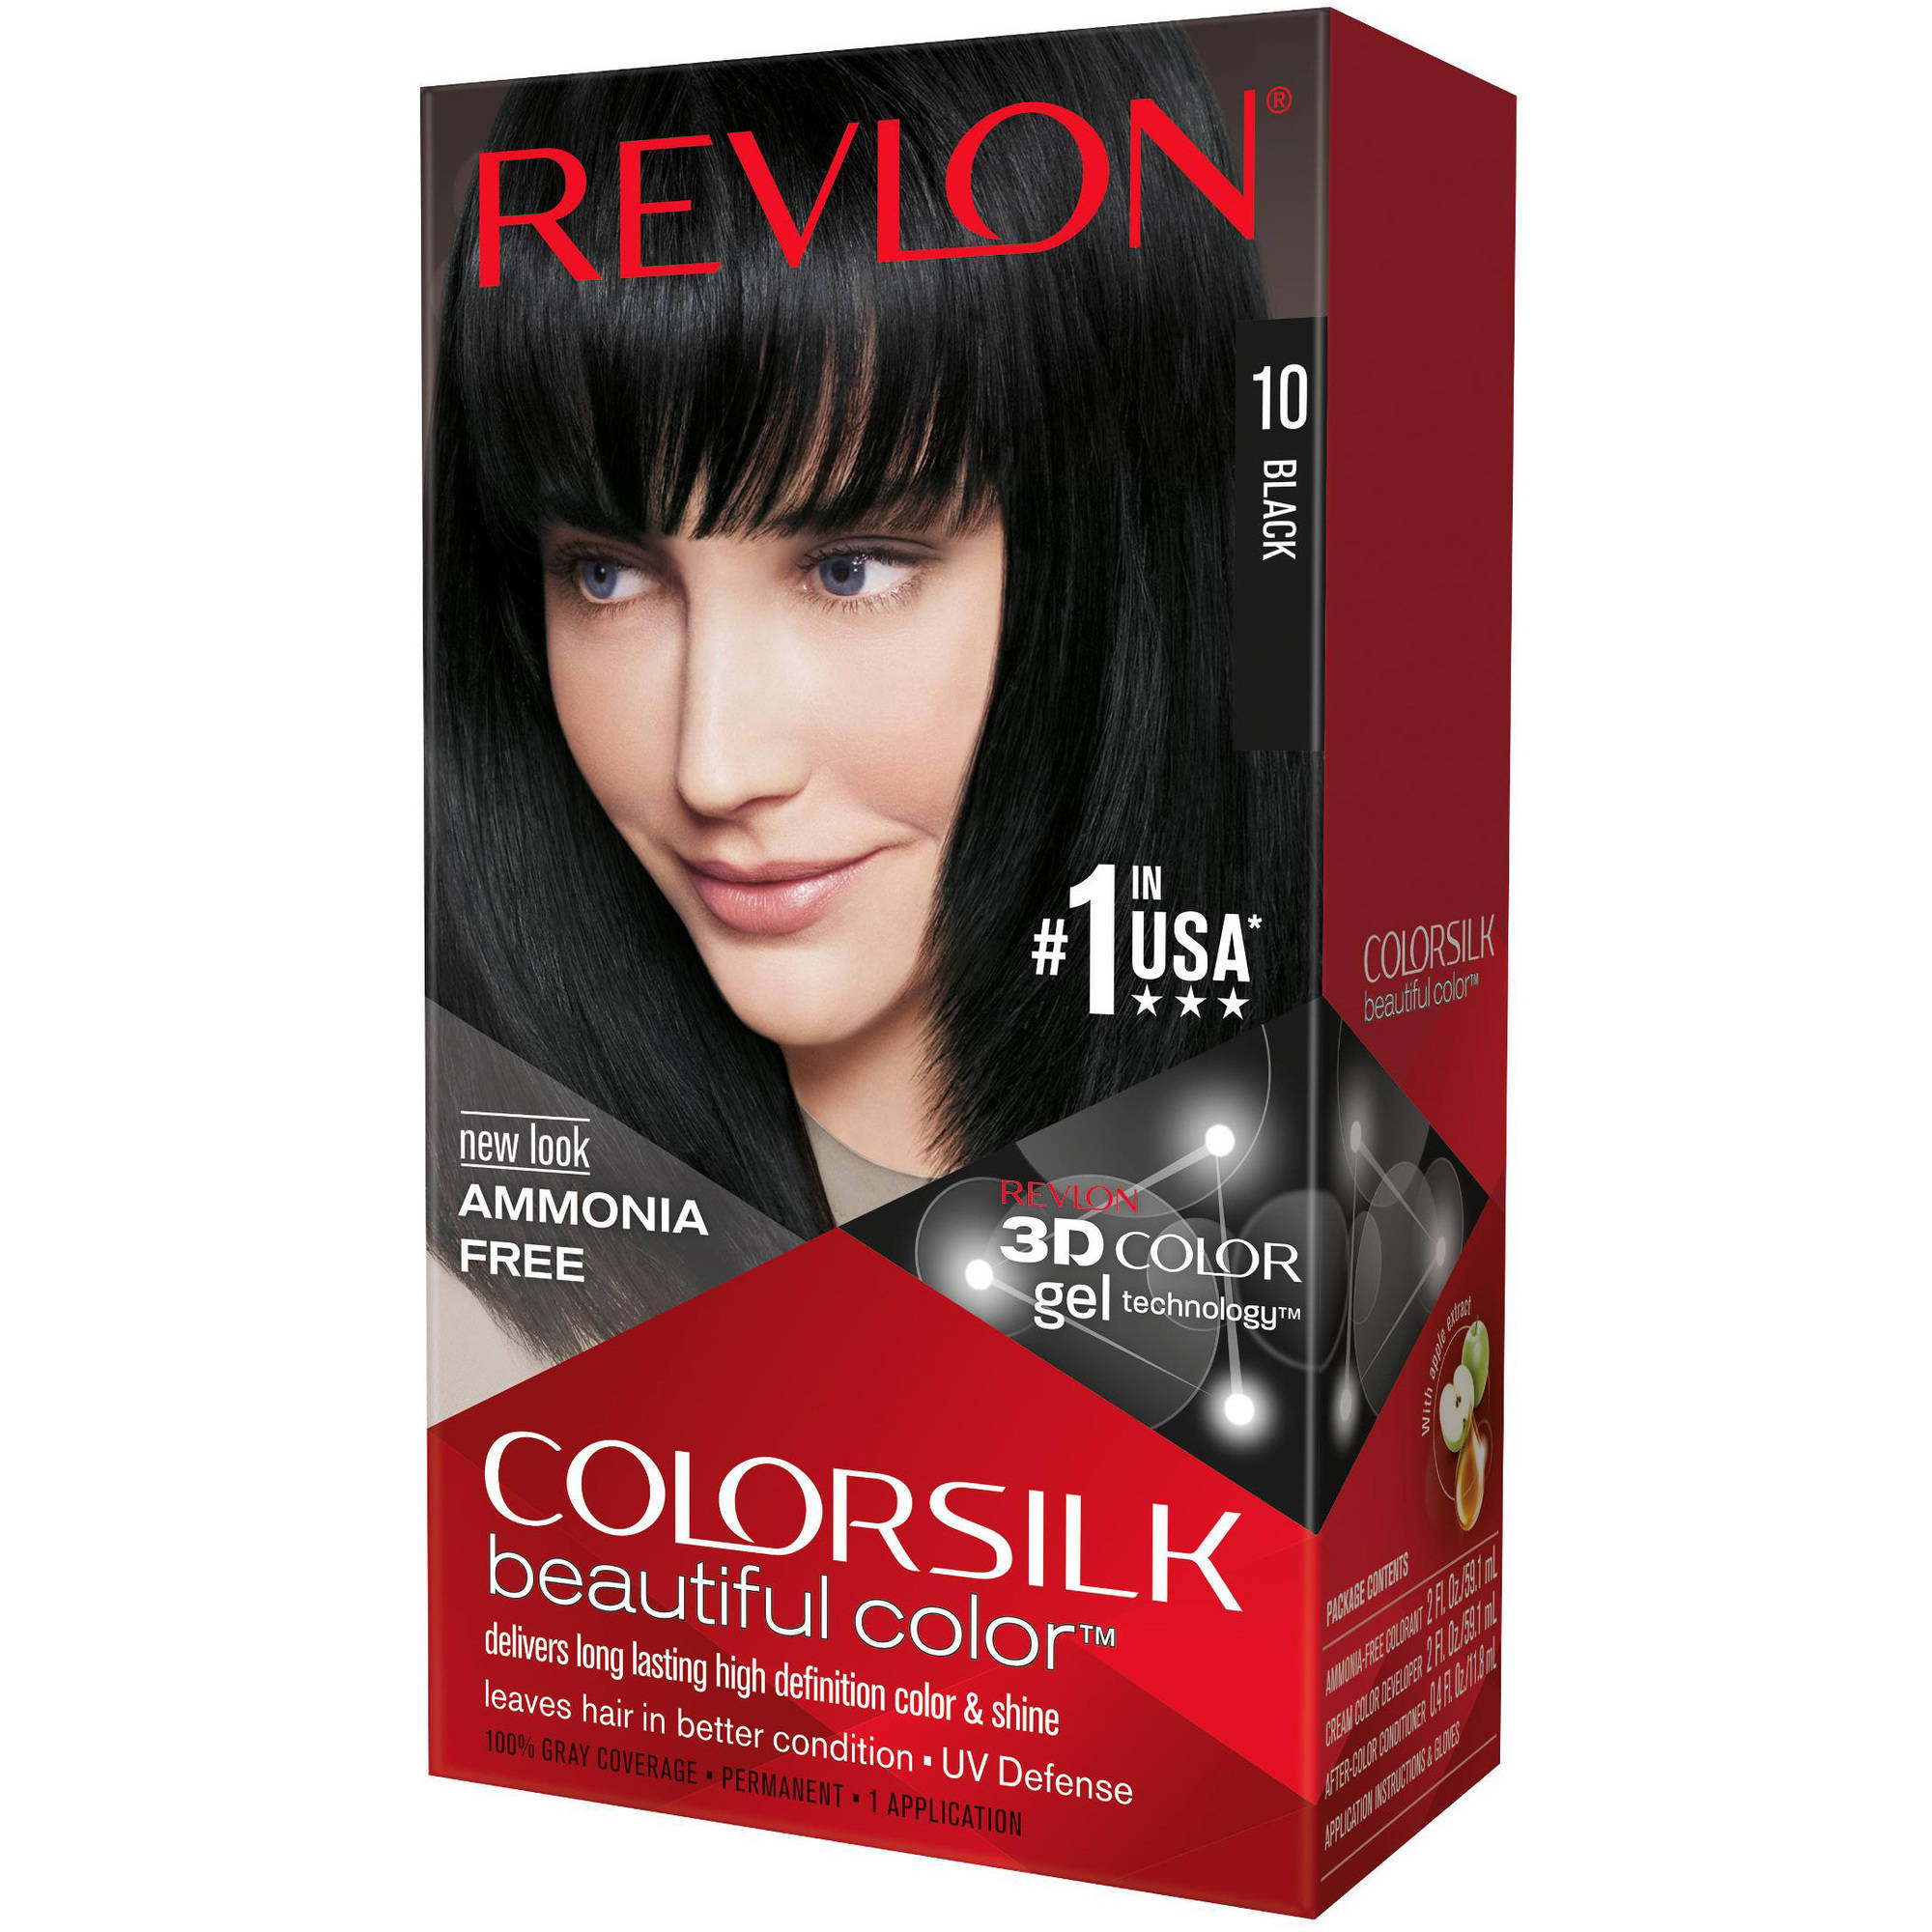 Revlon Colorsilk Beautiful Color Permanent Hair Color, 10 Black